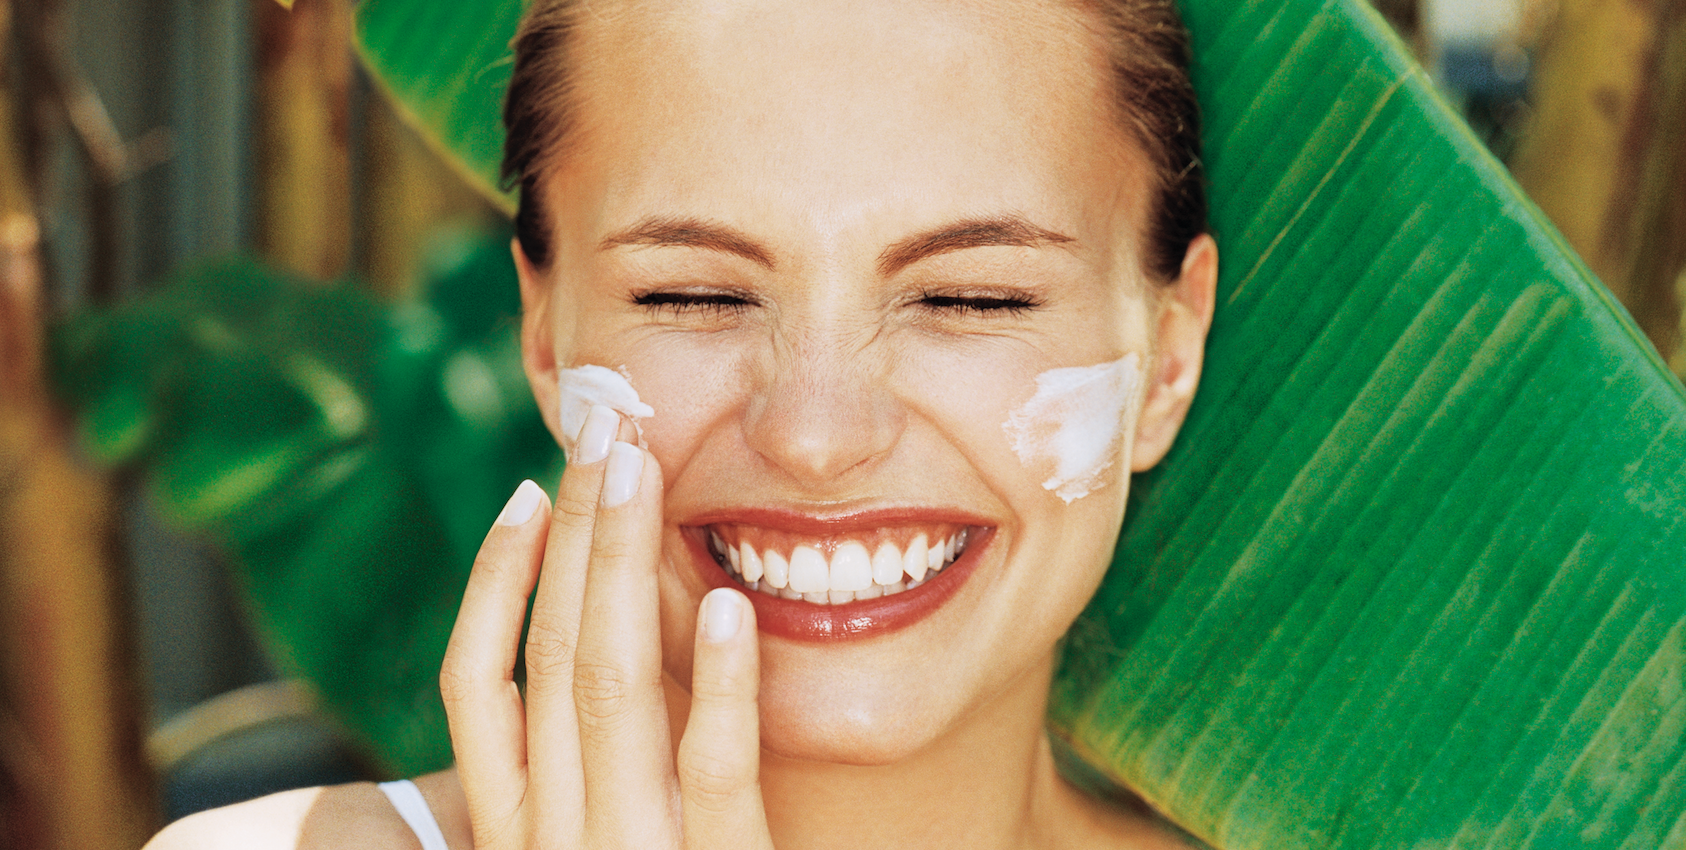 10 Derm-Approved Natural Ways to Protect Your Skin From the Sun